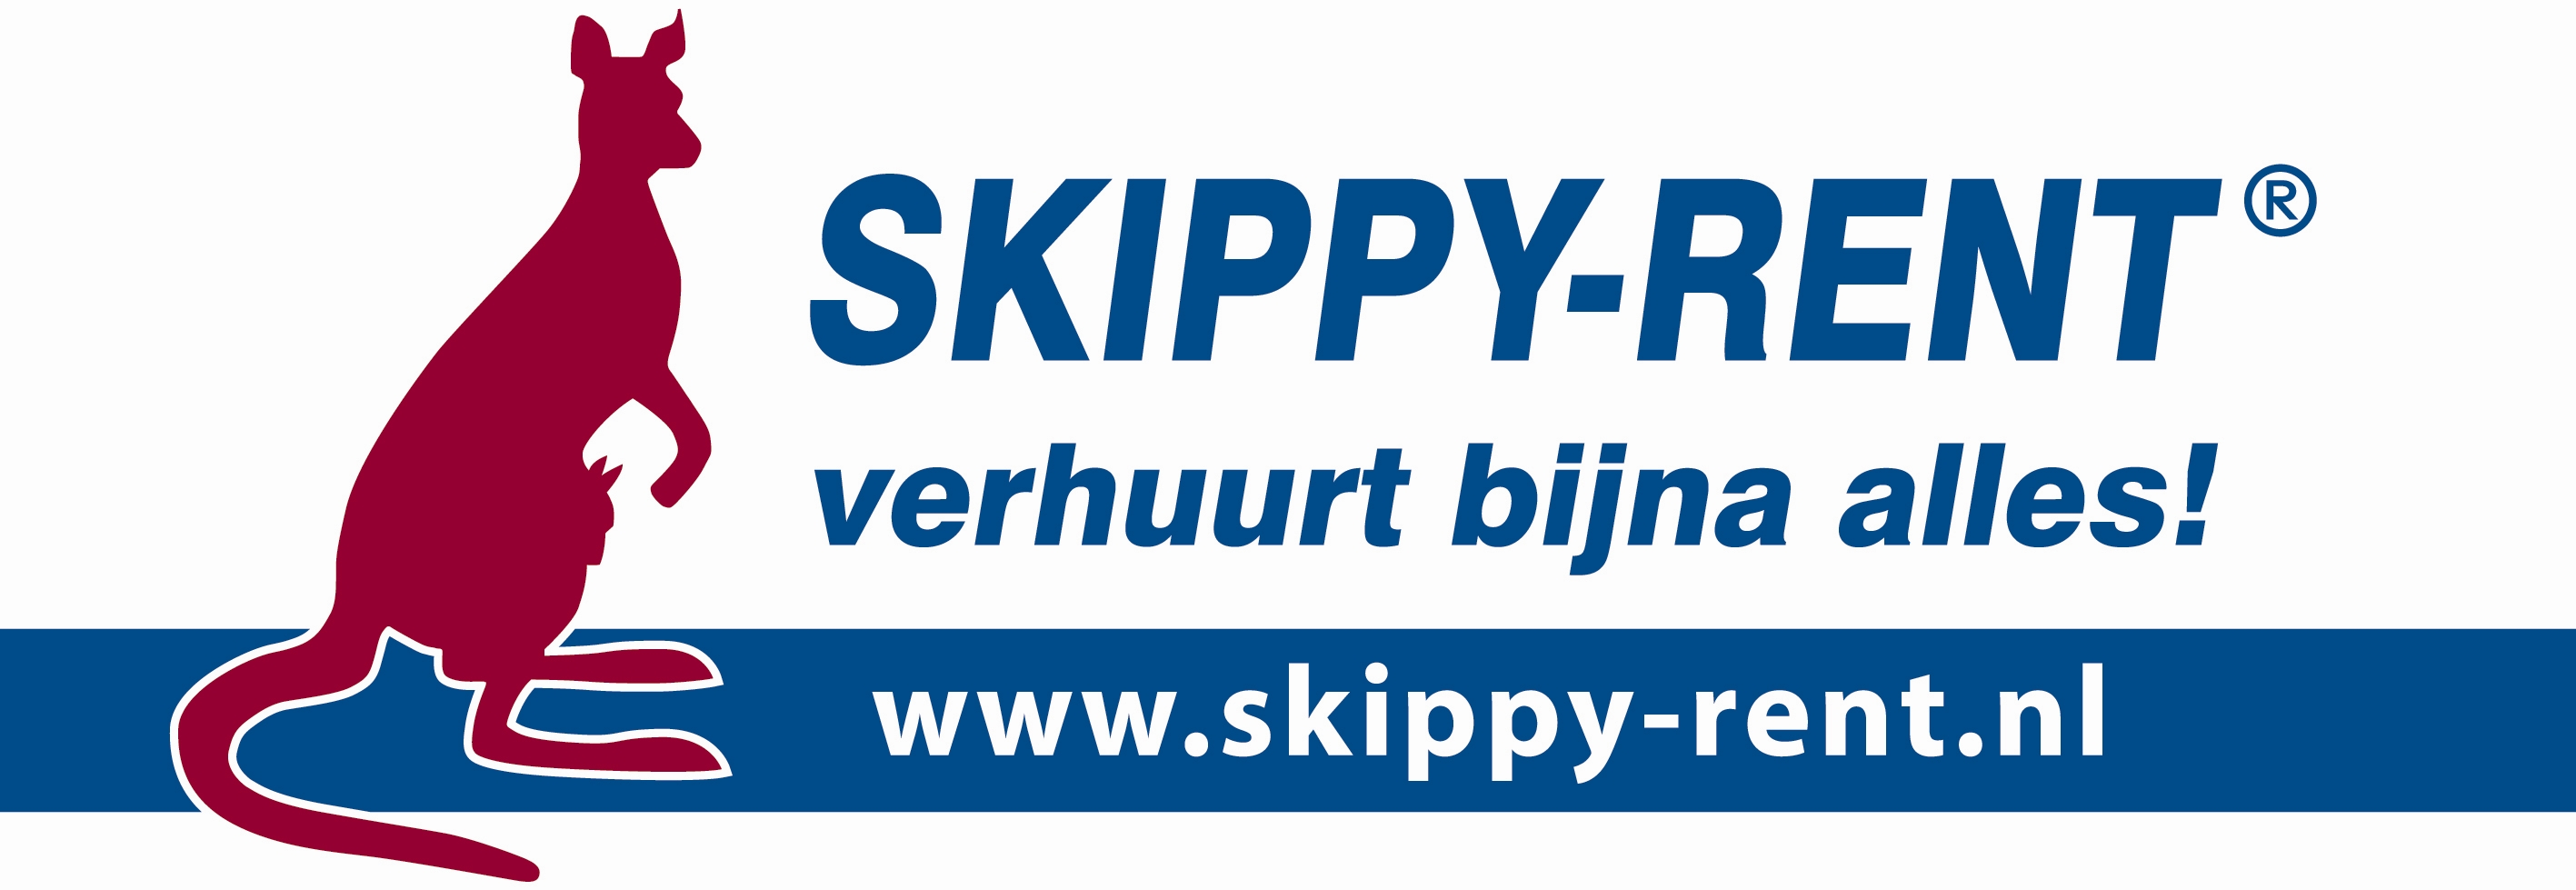 Skippy-Rent Machineverhuur